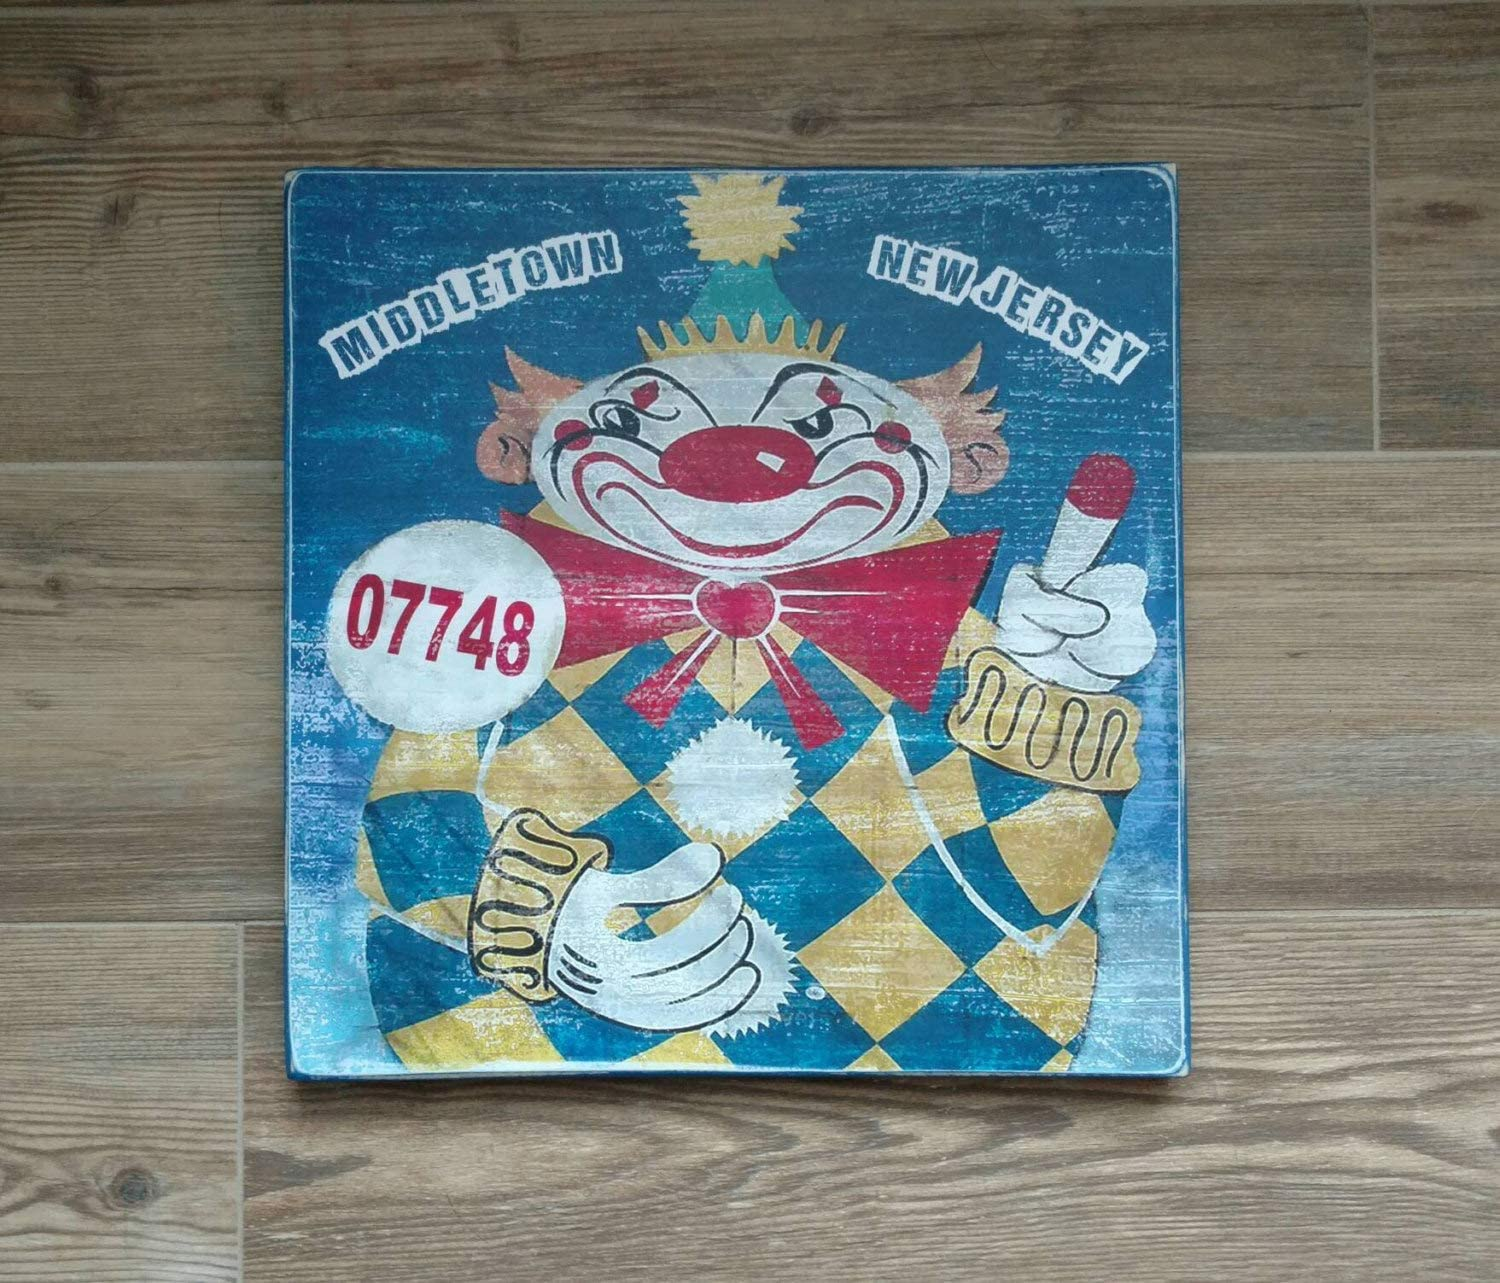 NOT BRANDED Middletown New Jersey Evil Clown of Middletown Calico The Clown Wood Sign NJ Dorm Decor